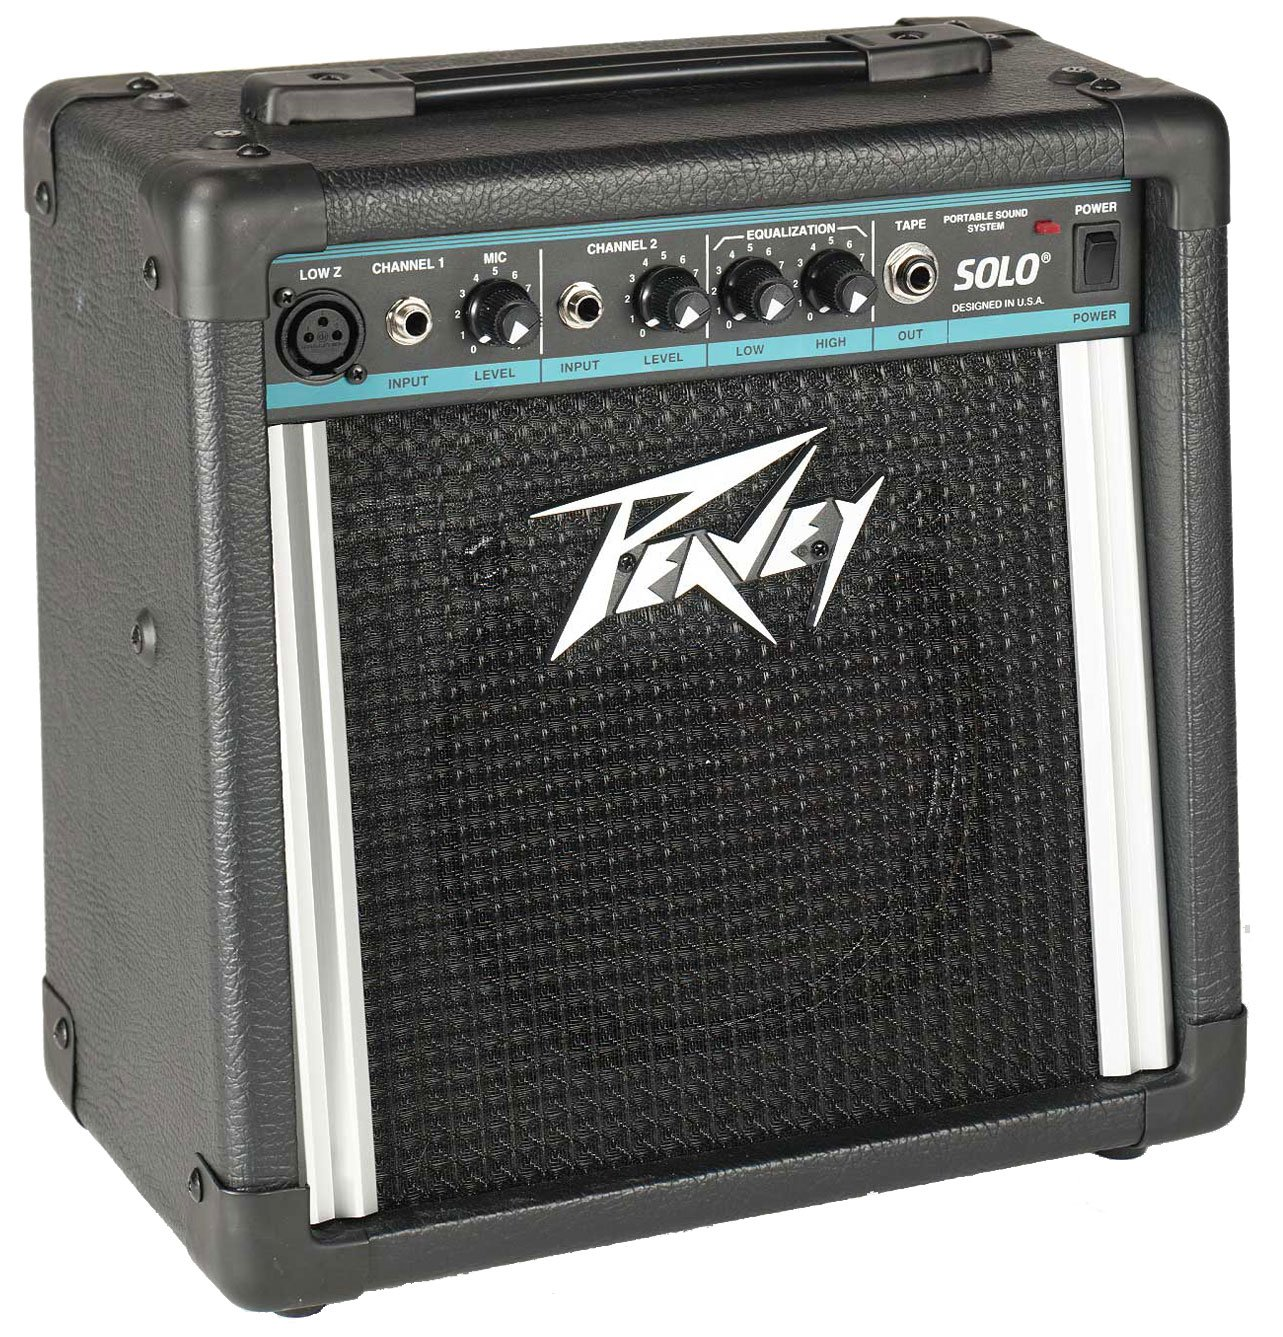 Peavey Solo Portable Battery Operated Sound System by Peavey